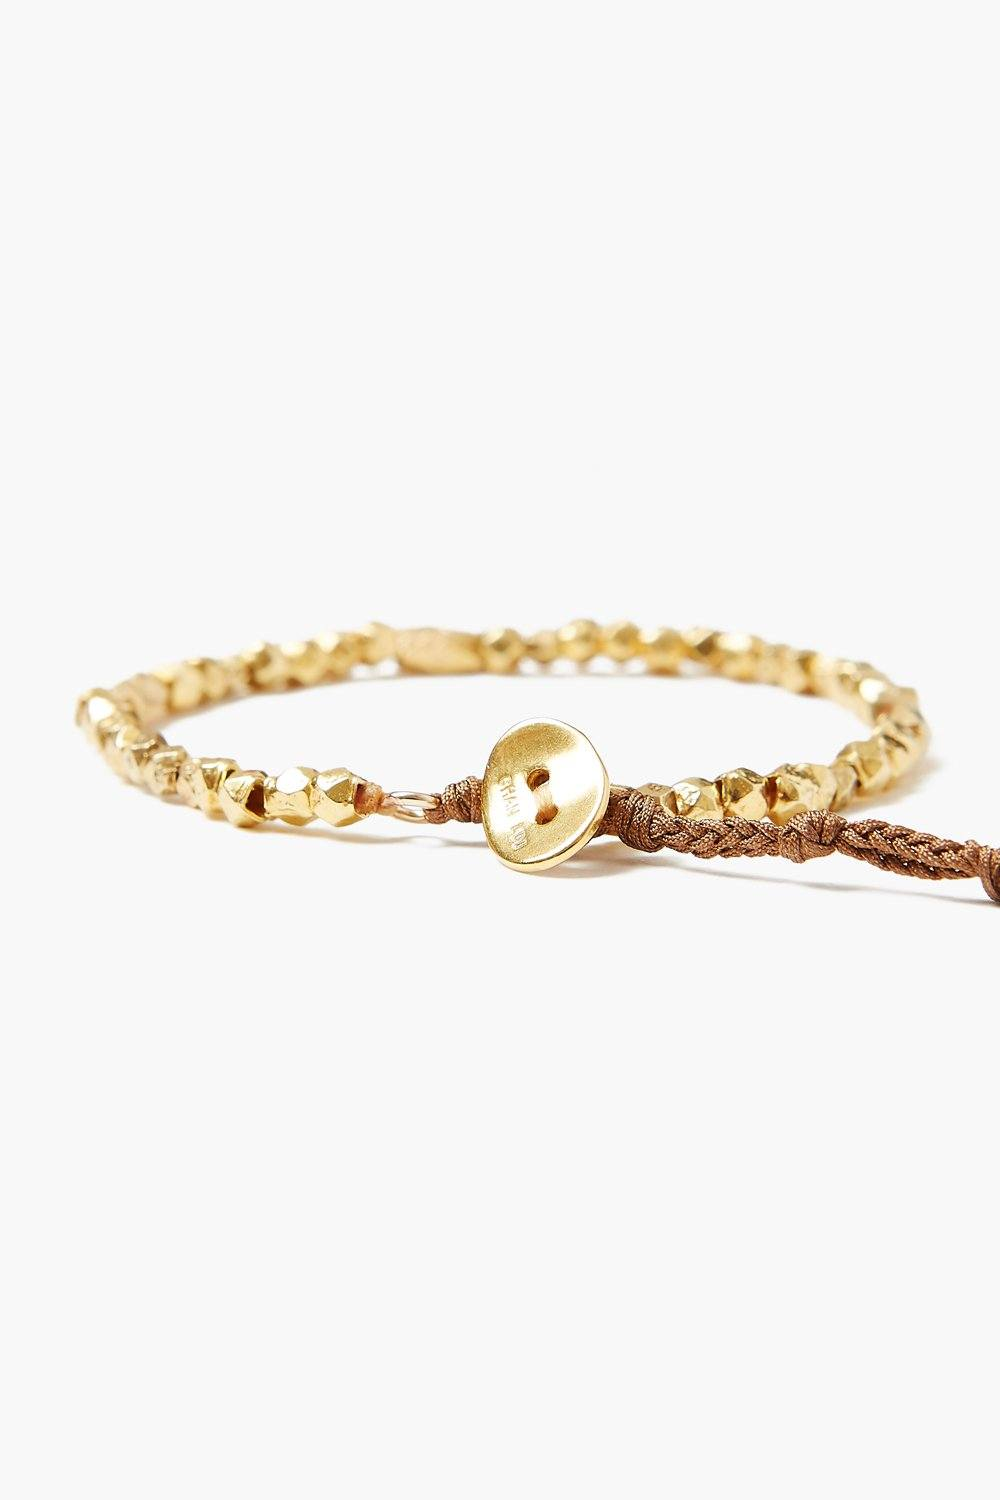 Etched Gold Pebble Bracelet